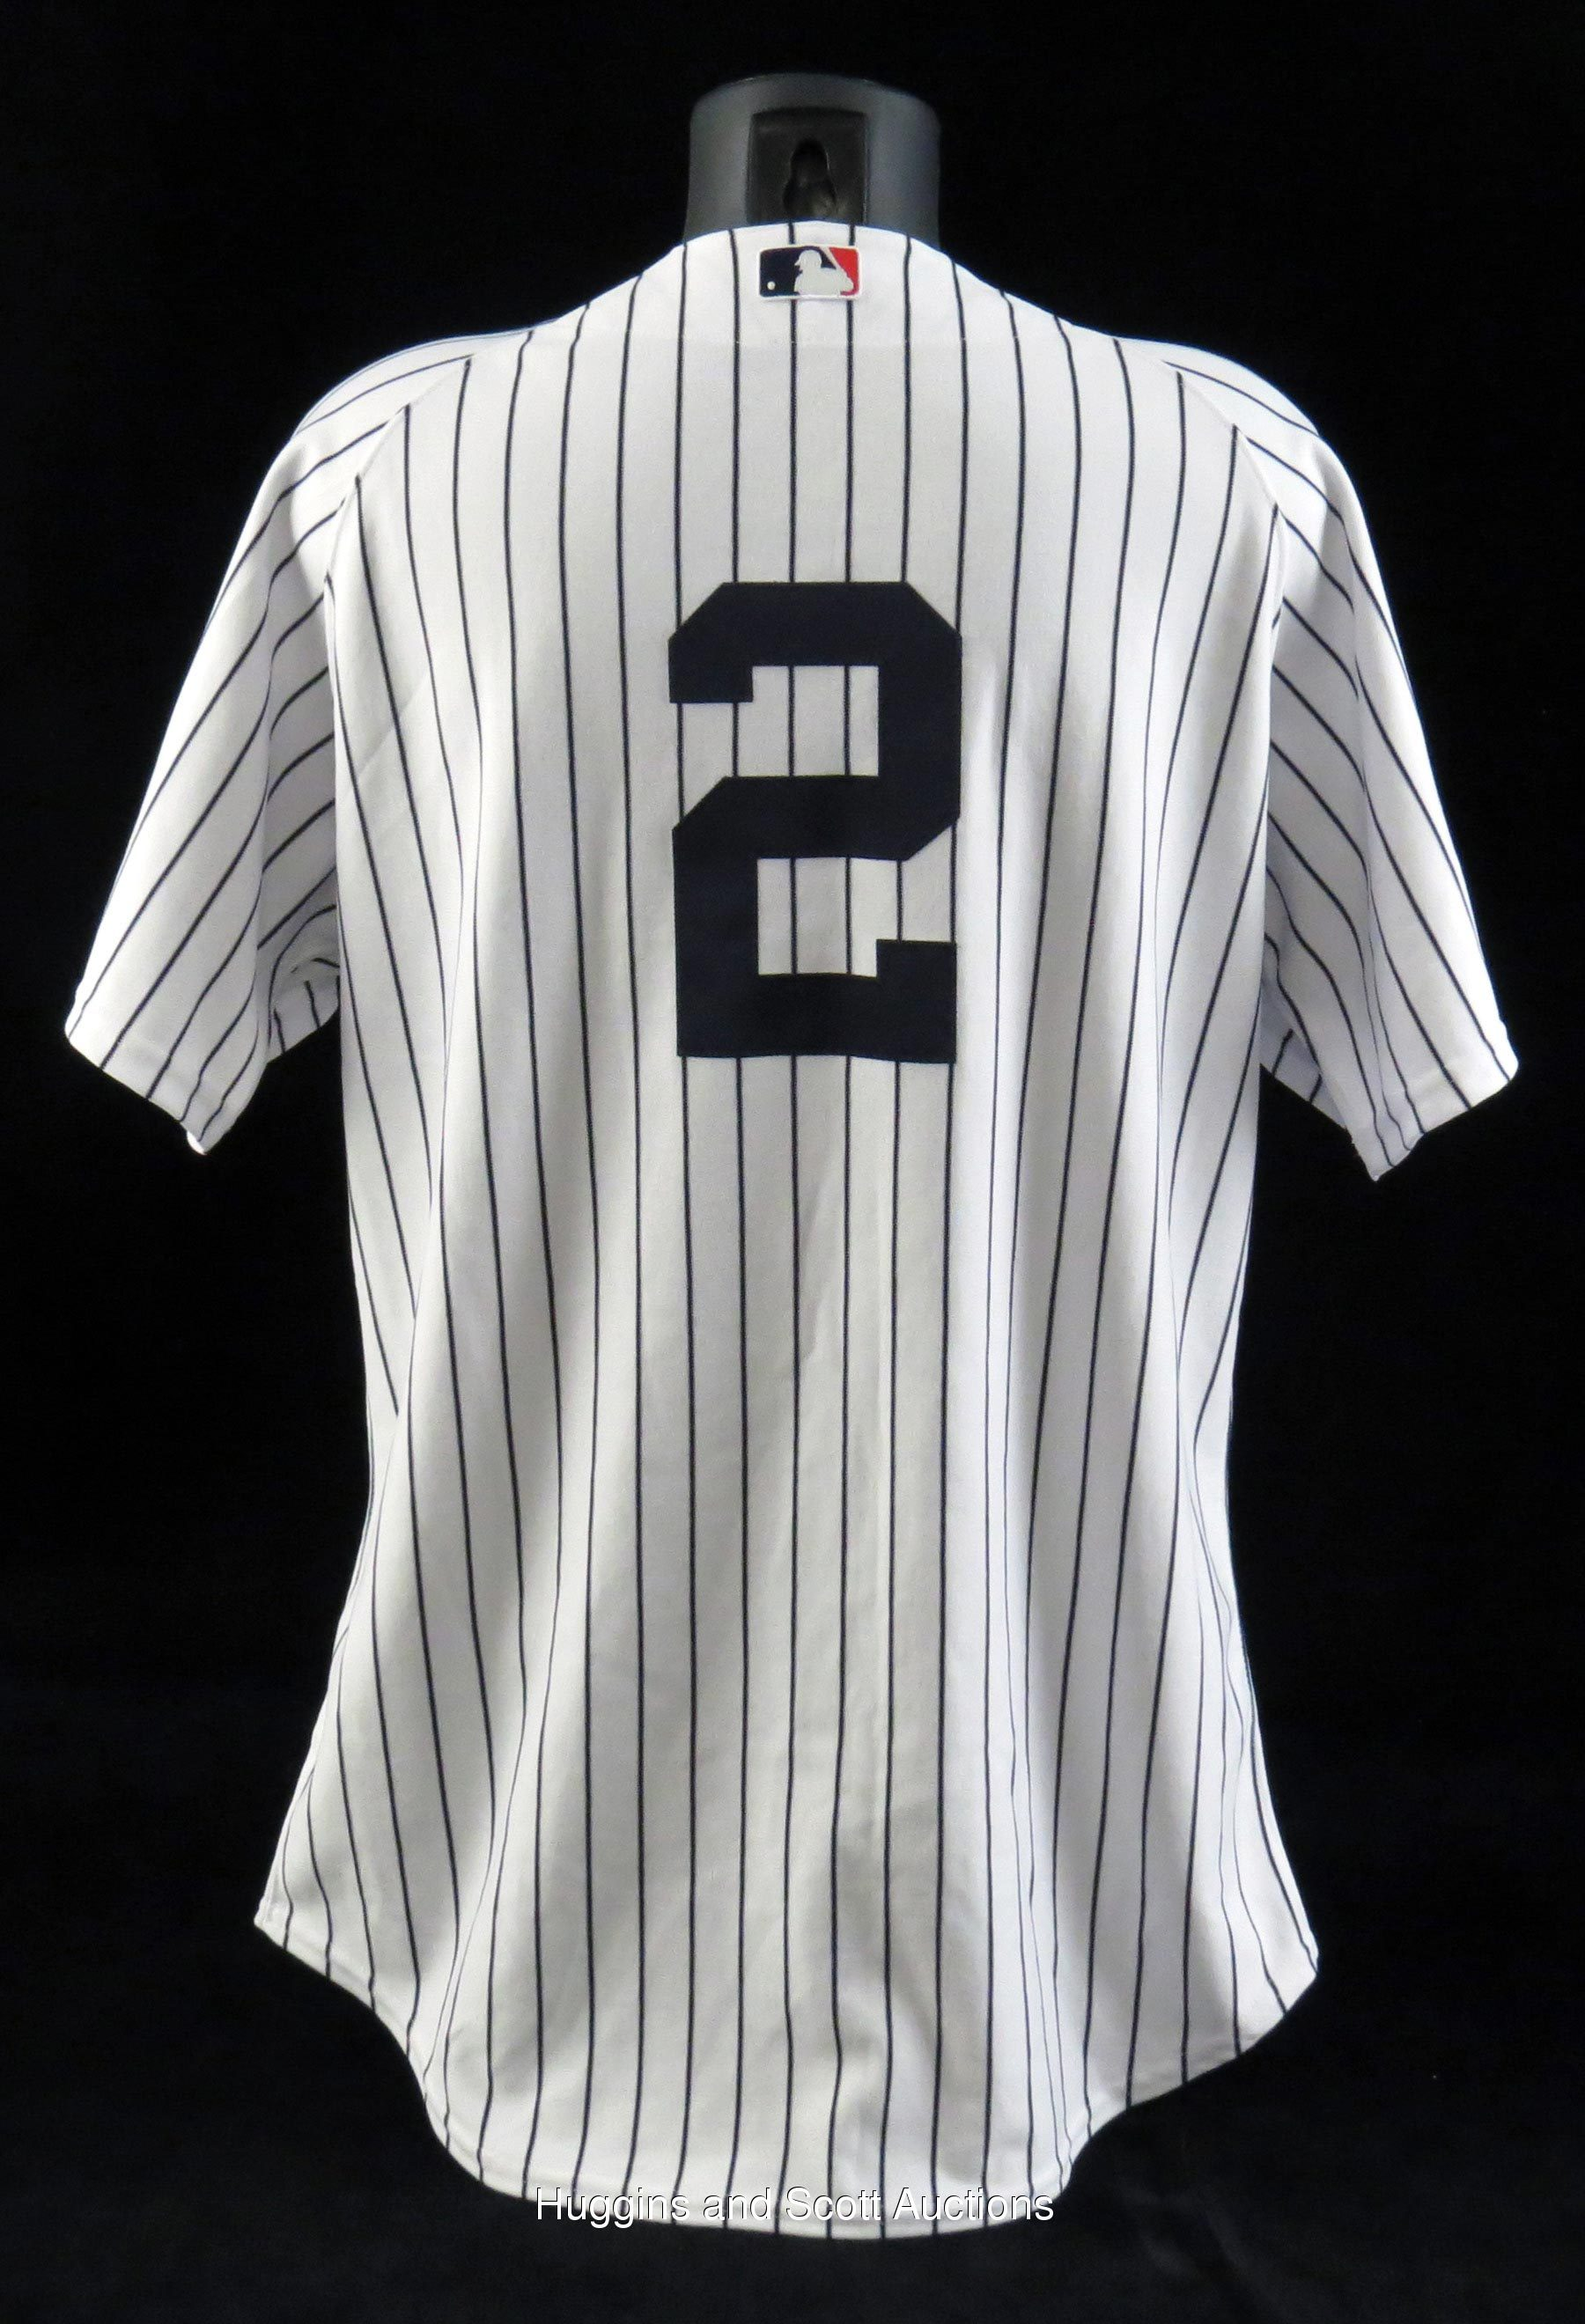 Derek Jeter 2008 New York Yankees Game-Worn Home Jersey - MEARS A5 5cb2cb6cf2e